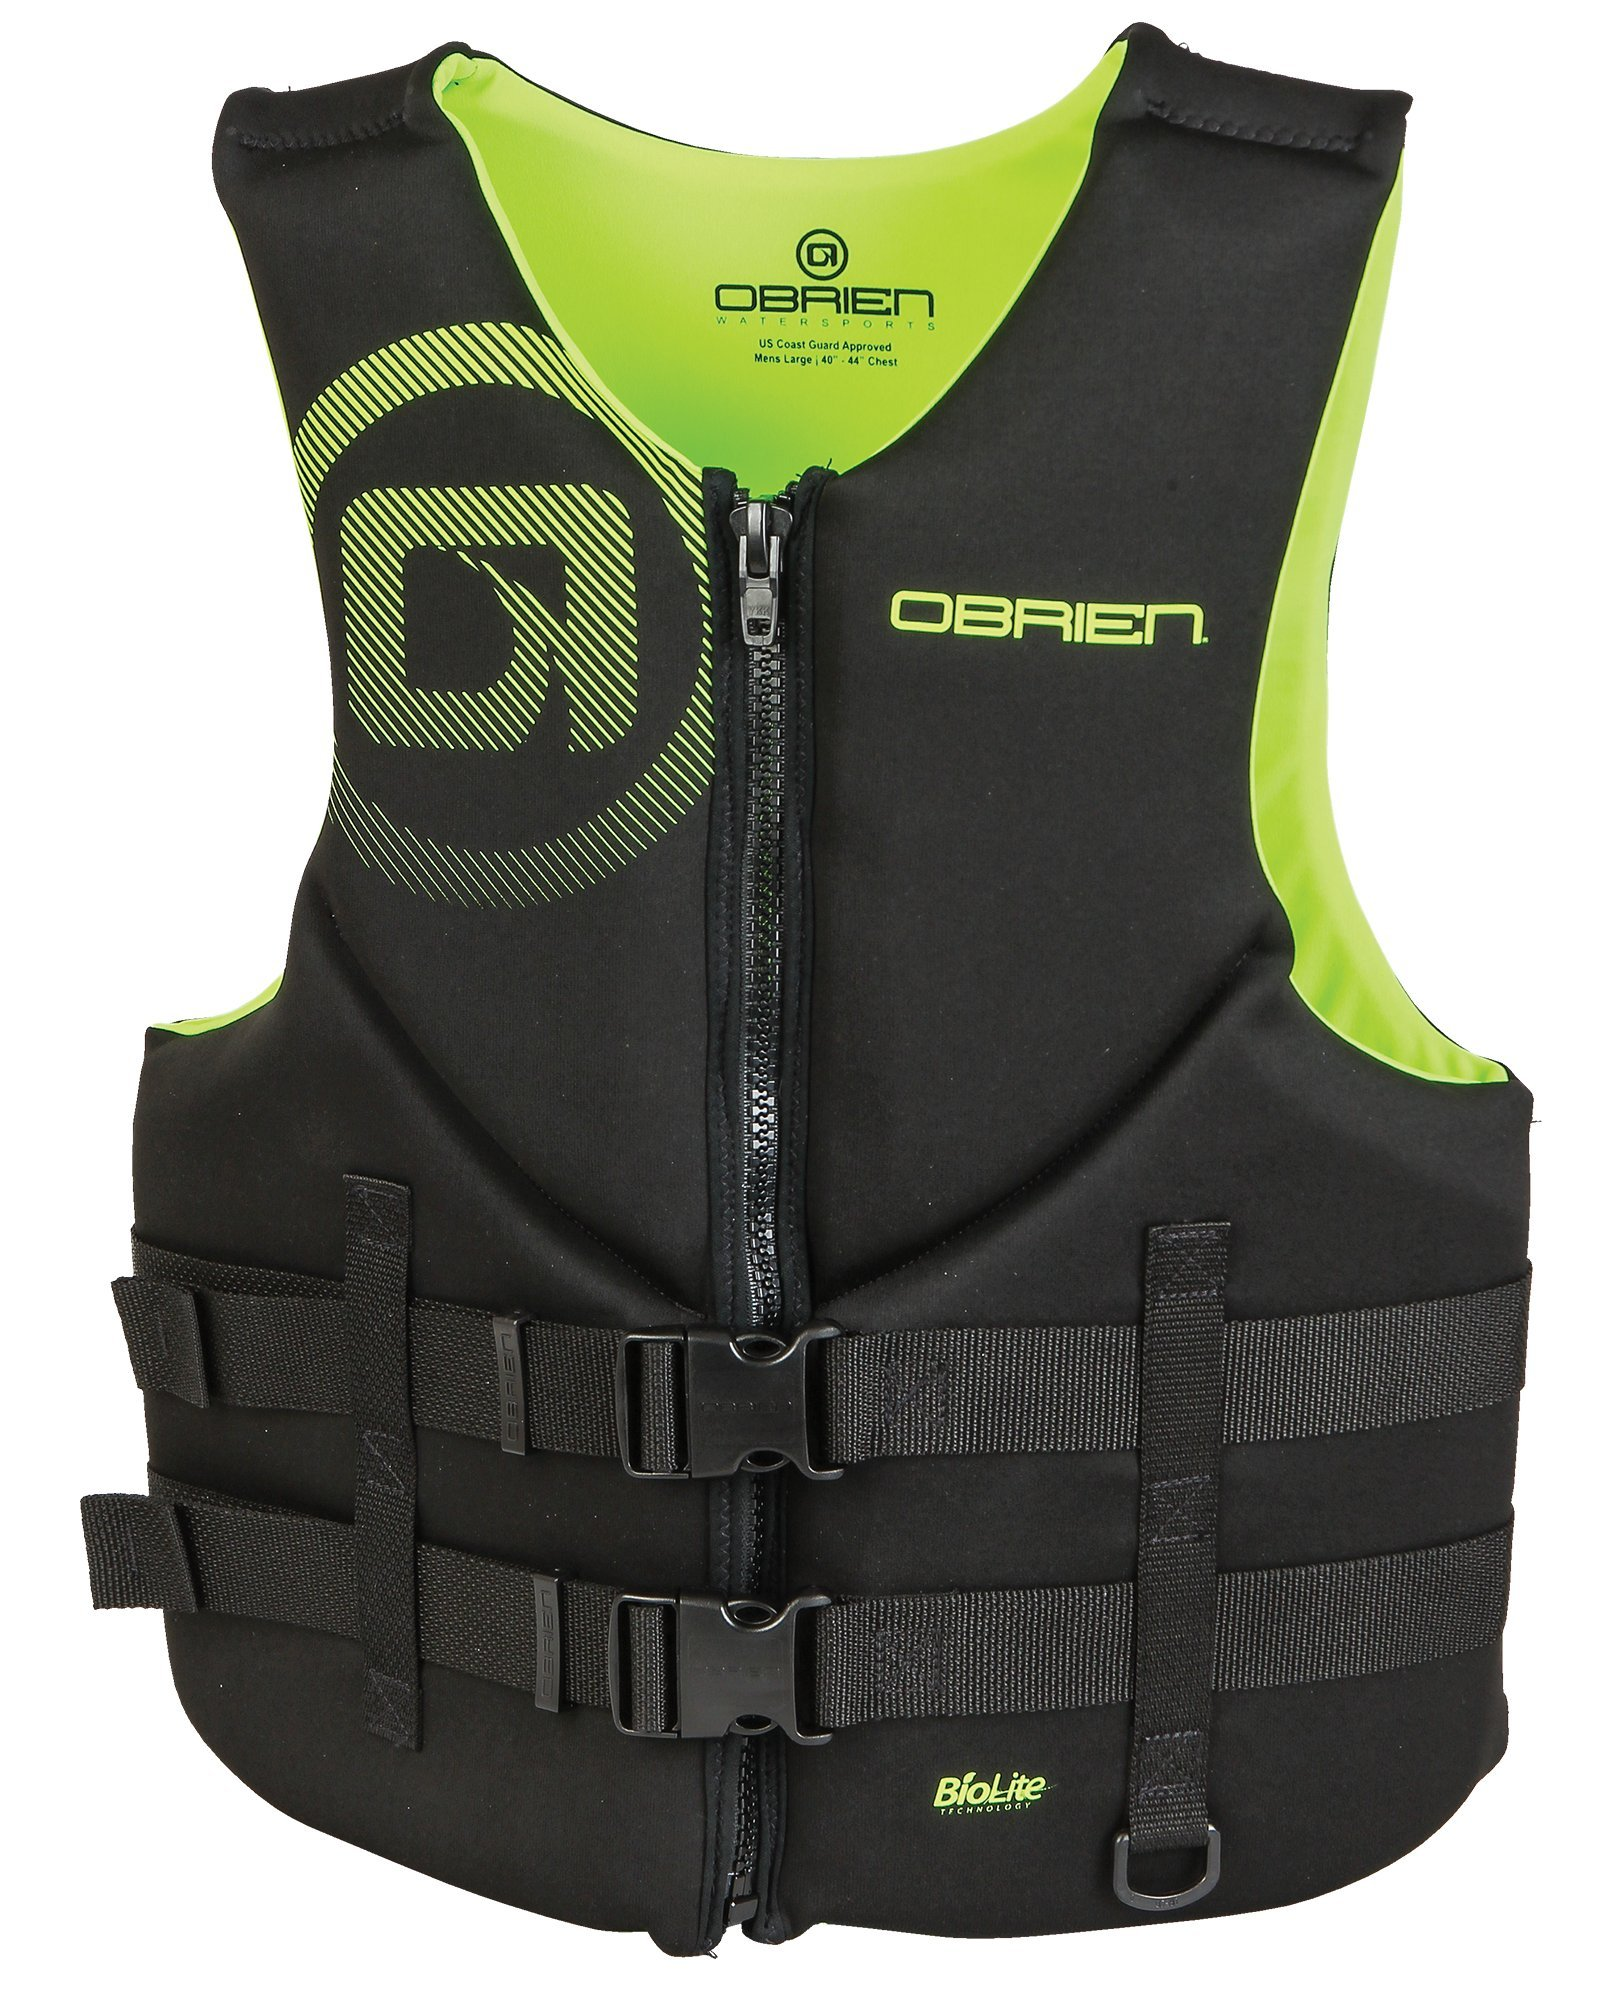 O'Brien Men's Traditional Neoprene Life Jacket, Green, X-Large by O'Brien